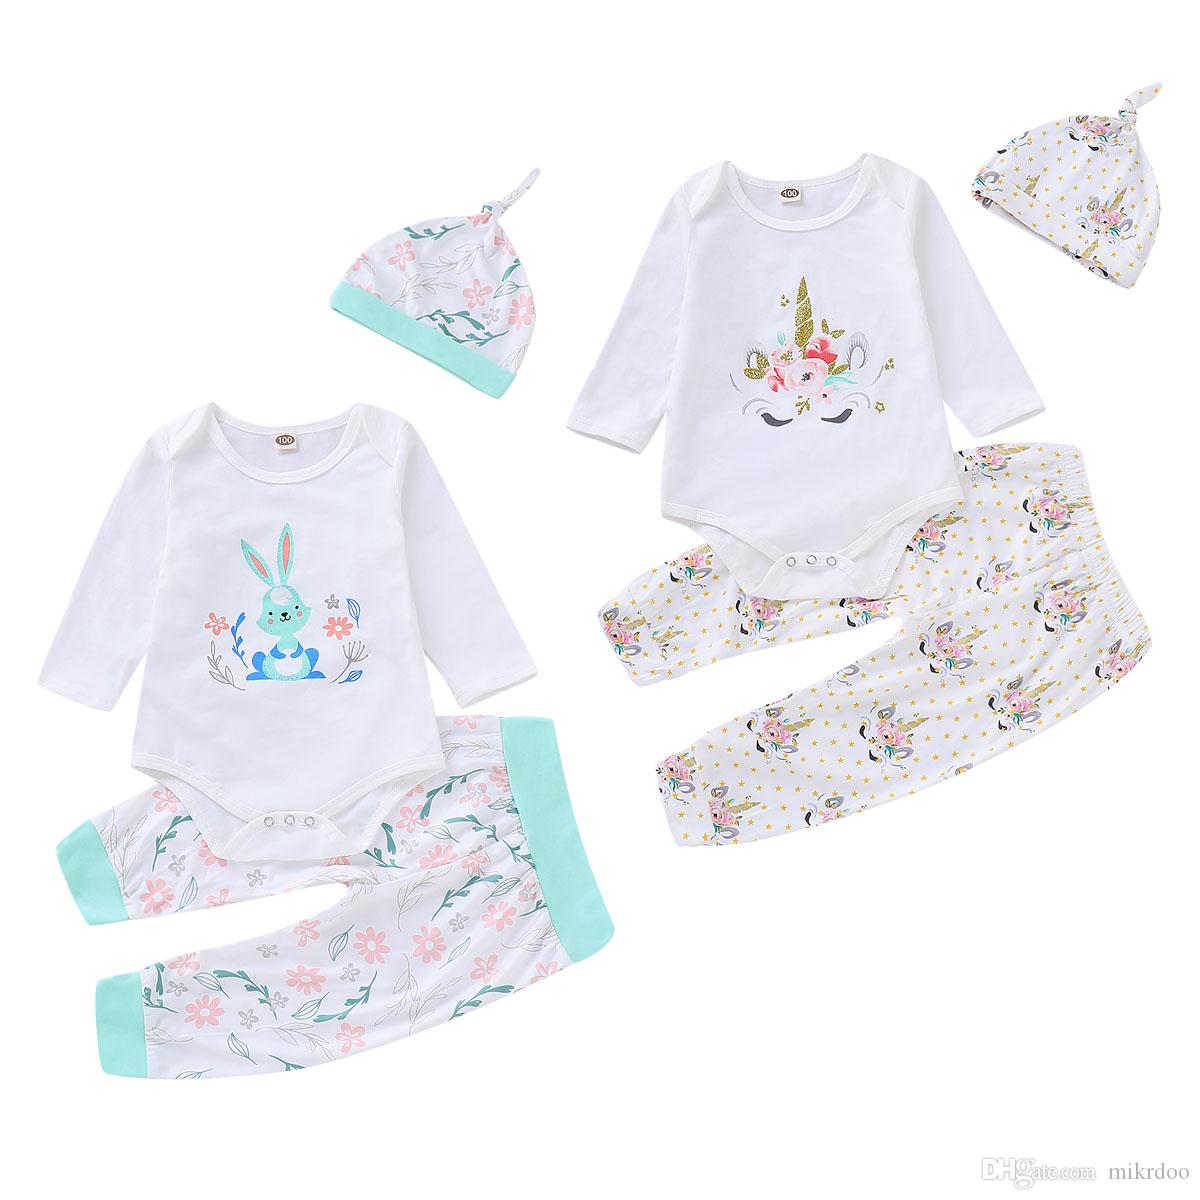 080abf6d4148e 2019 Mikrdoo Toddler Baby Boys Girls Cartoon Clothes Set Rabbit Elephants  Print Long Sleeve Romper Pant Hat Outfit Clothing From Mikrdoo, $10.74 |  DHgate.